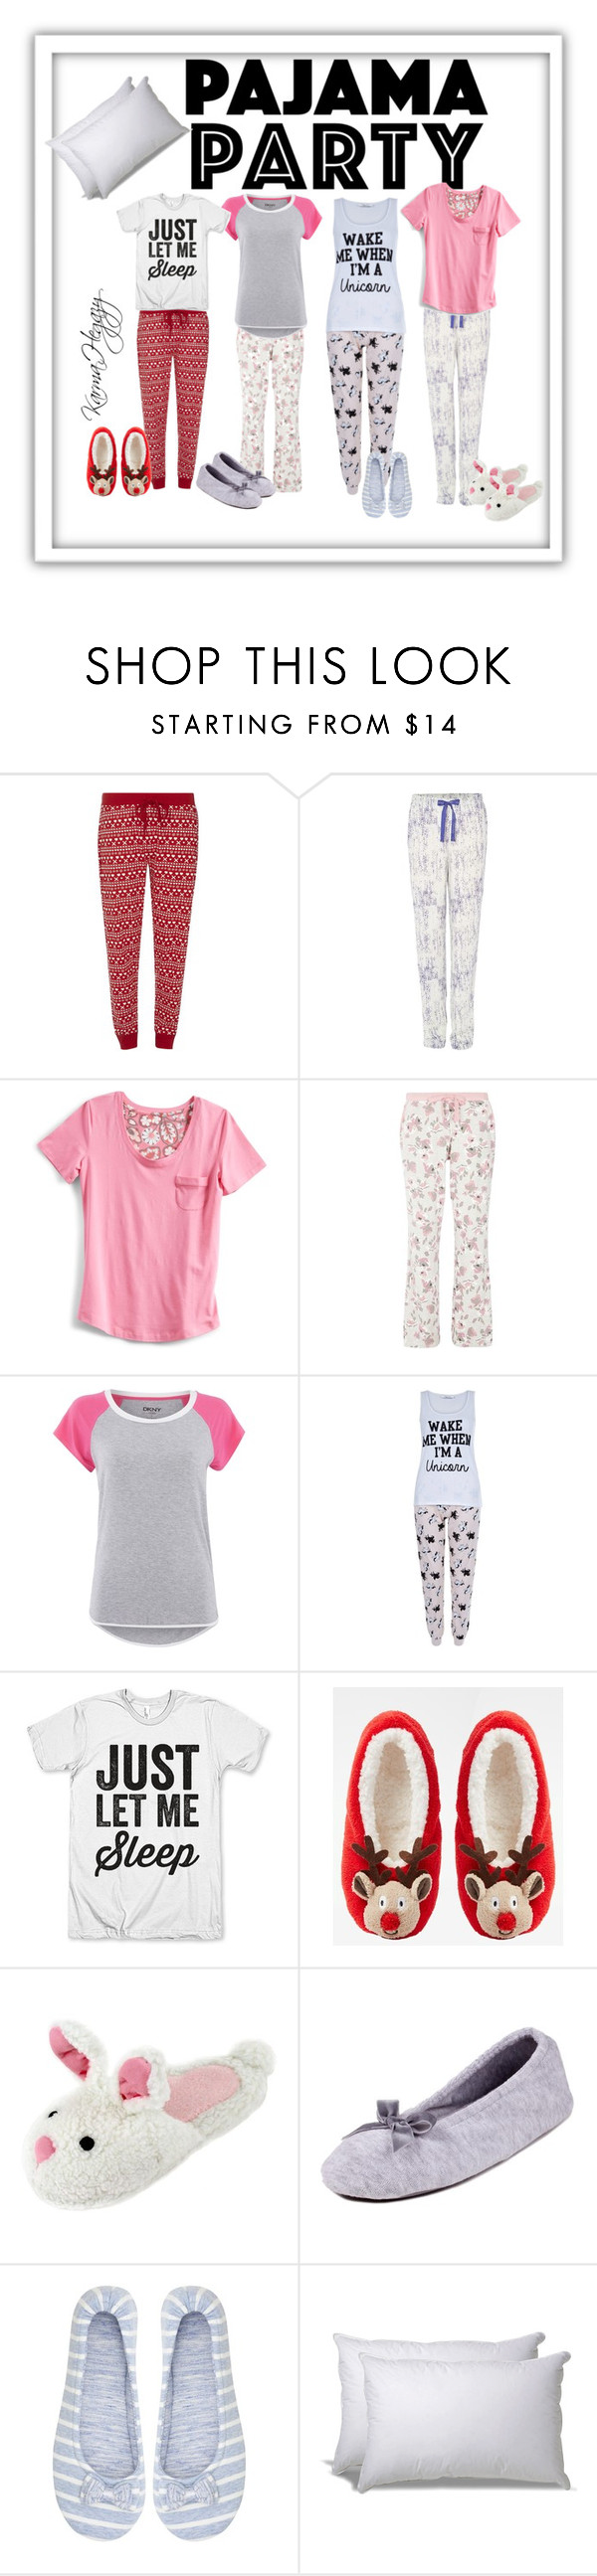 """Pajama Party"" by karmahegazy ❤ liked on Polyvore featuring Dorothy Perkins, Calvin Klein, Vera Bradley, DKNY, New Look, ASOS, Totes, M&Co and ExceptionalSheets"